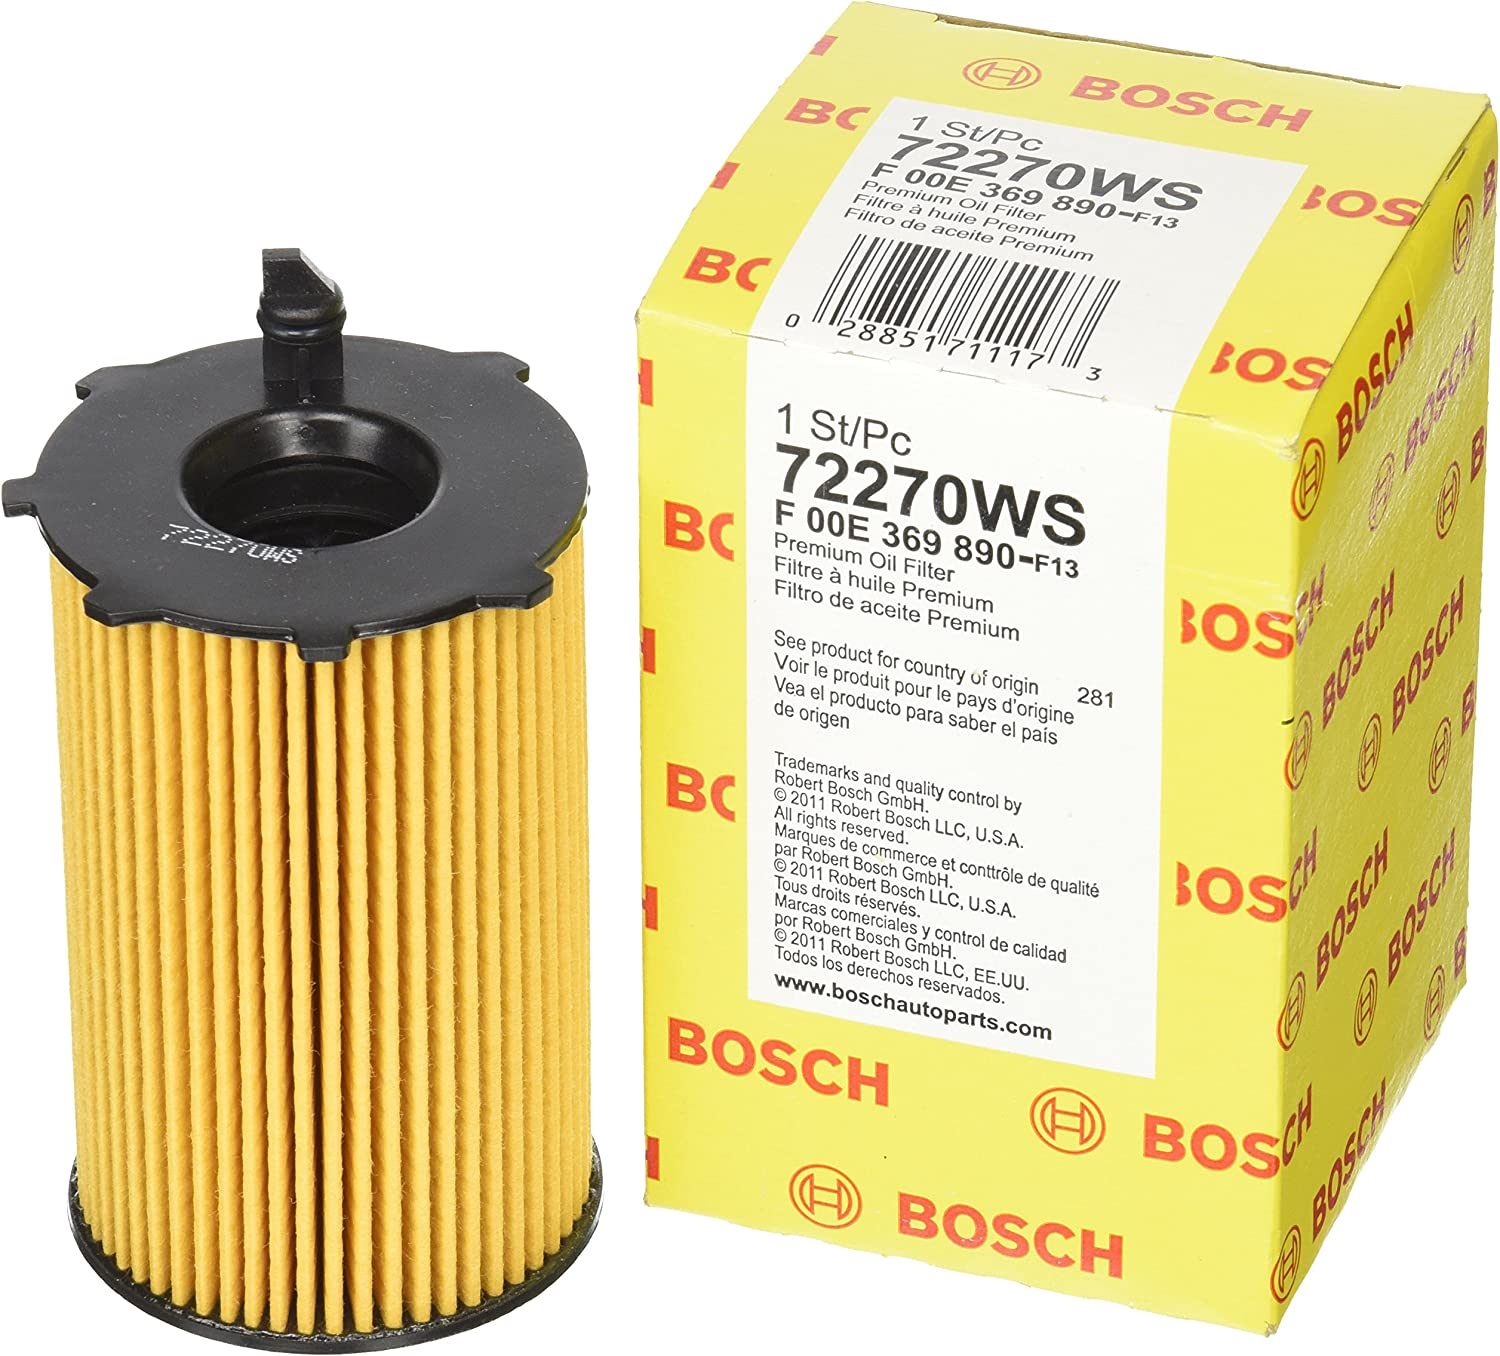 Bosch 72218WS Workshop Oil Filter